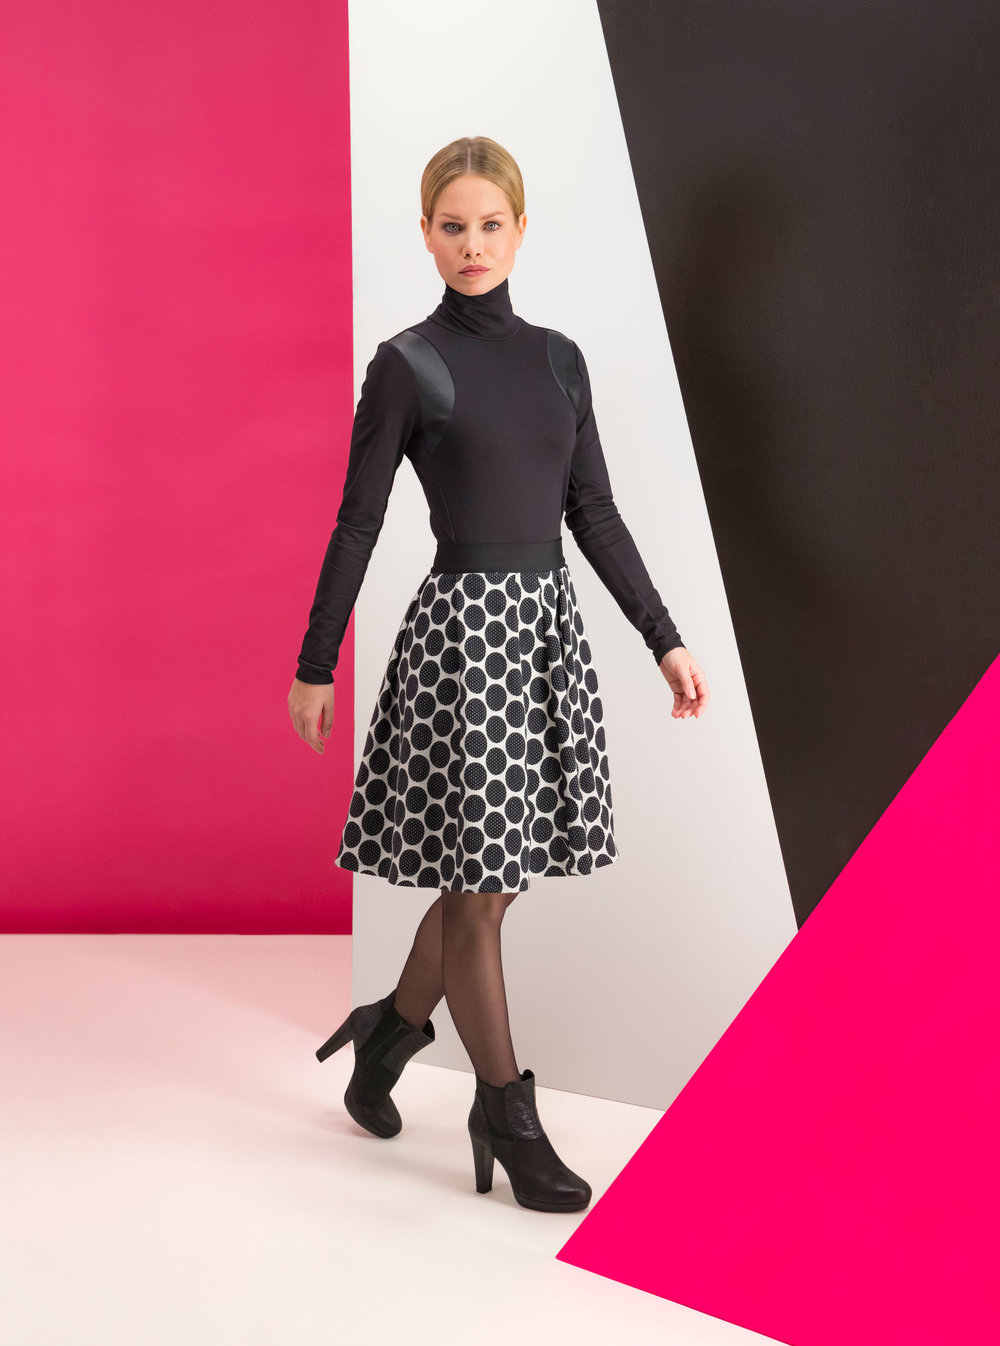 Marianne-black-outfit-pink-geometry-set-1.jpg